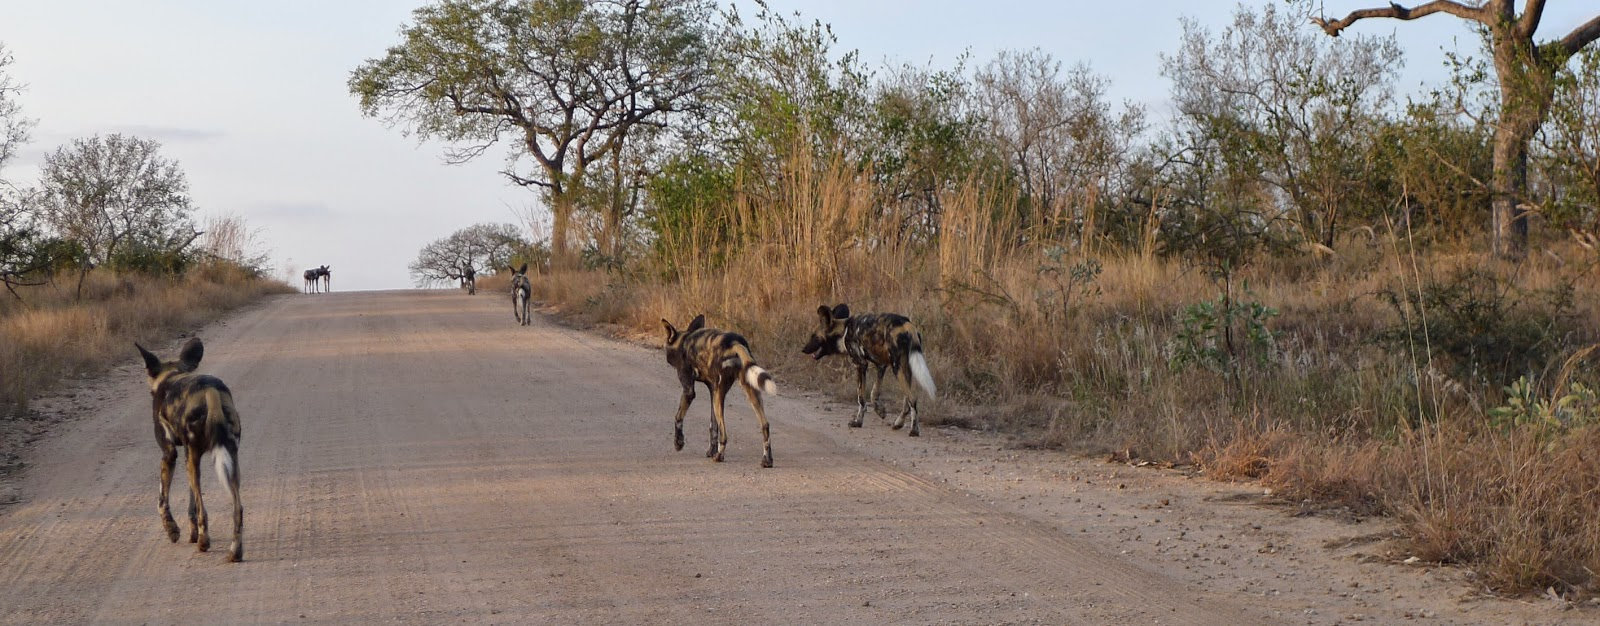 Worldbirder: Wild Dog - Photo essay